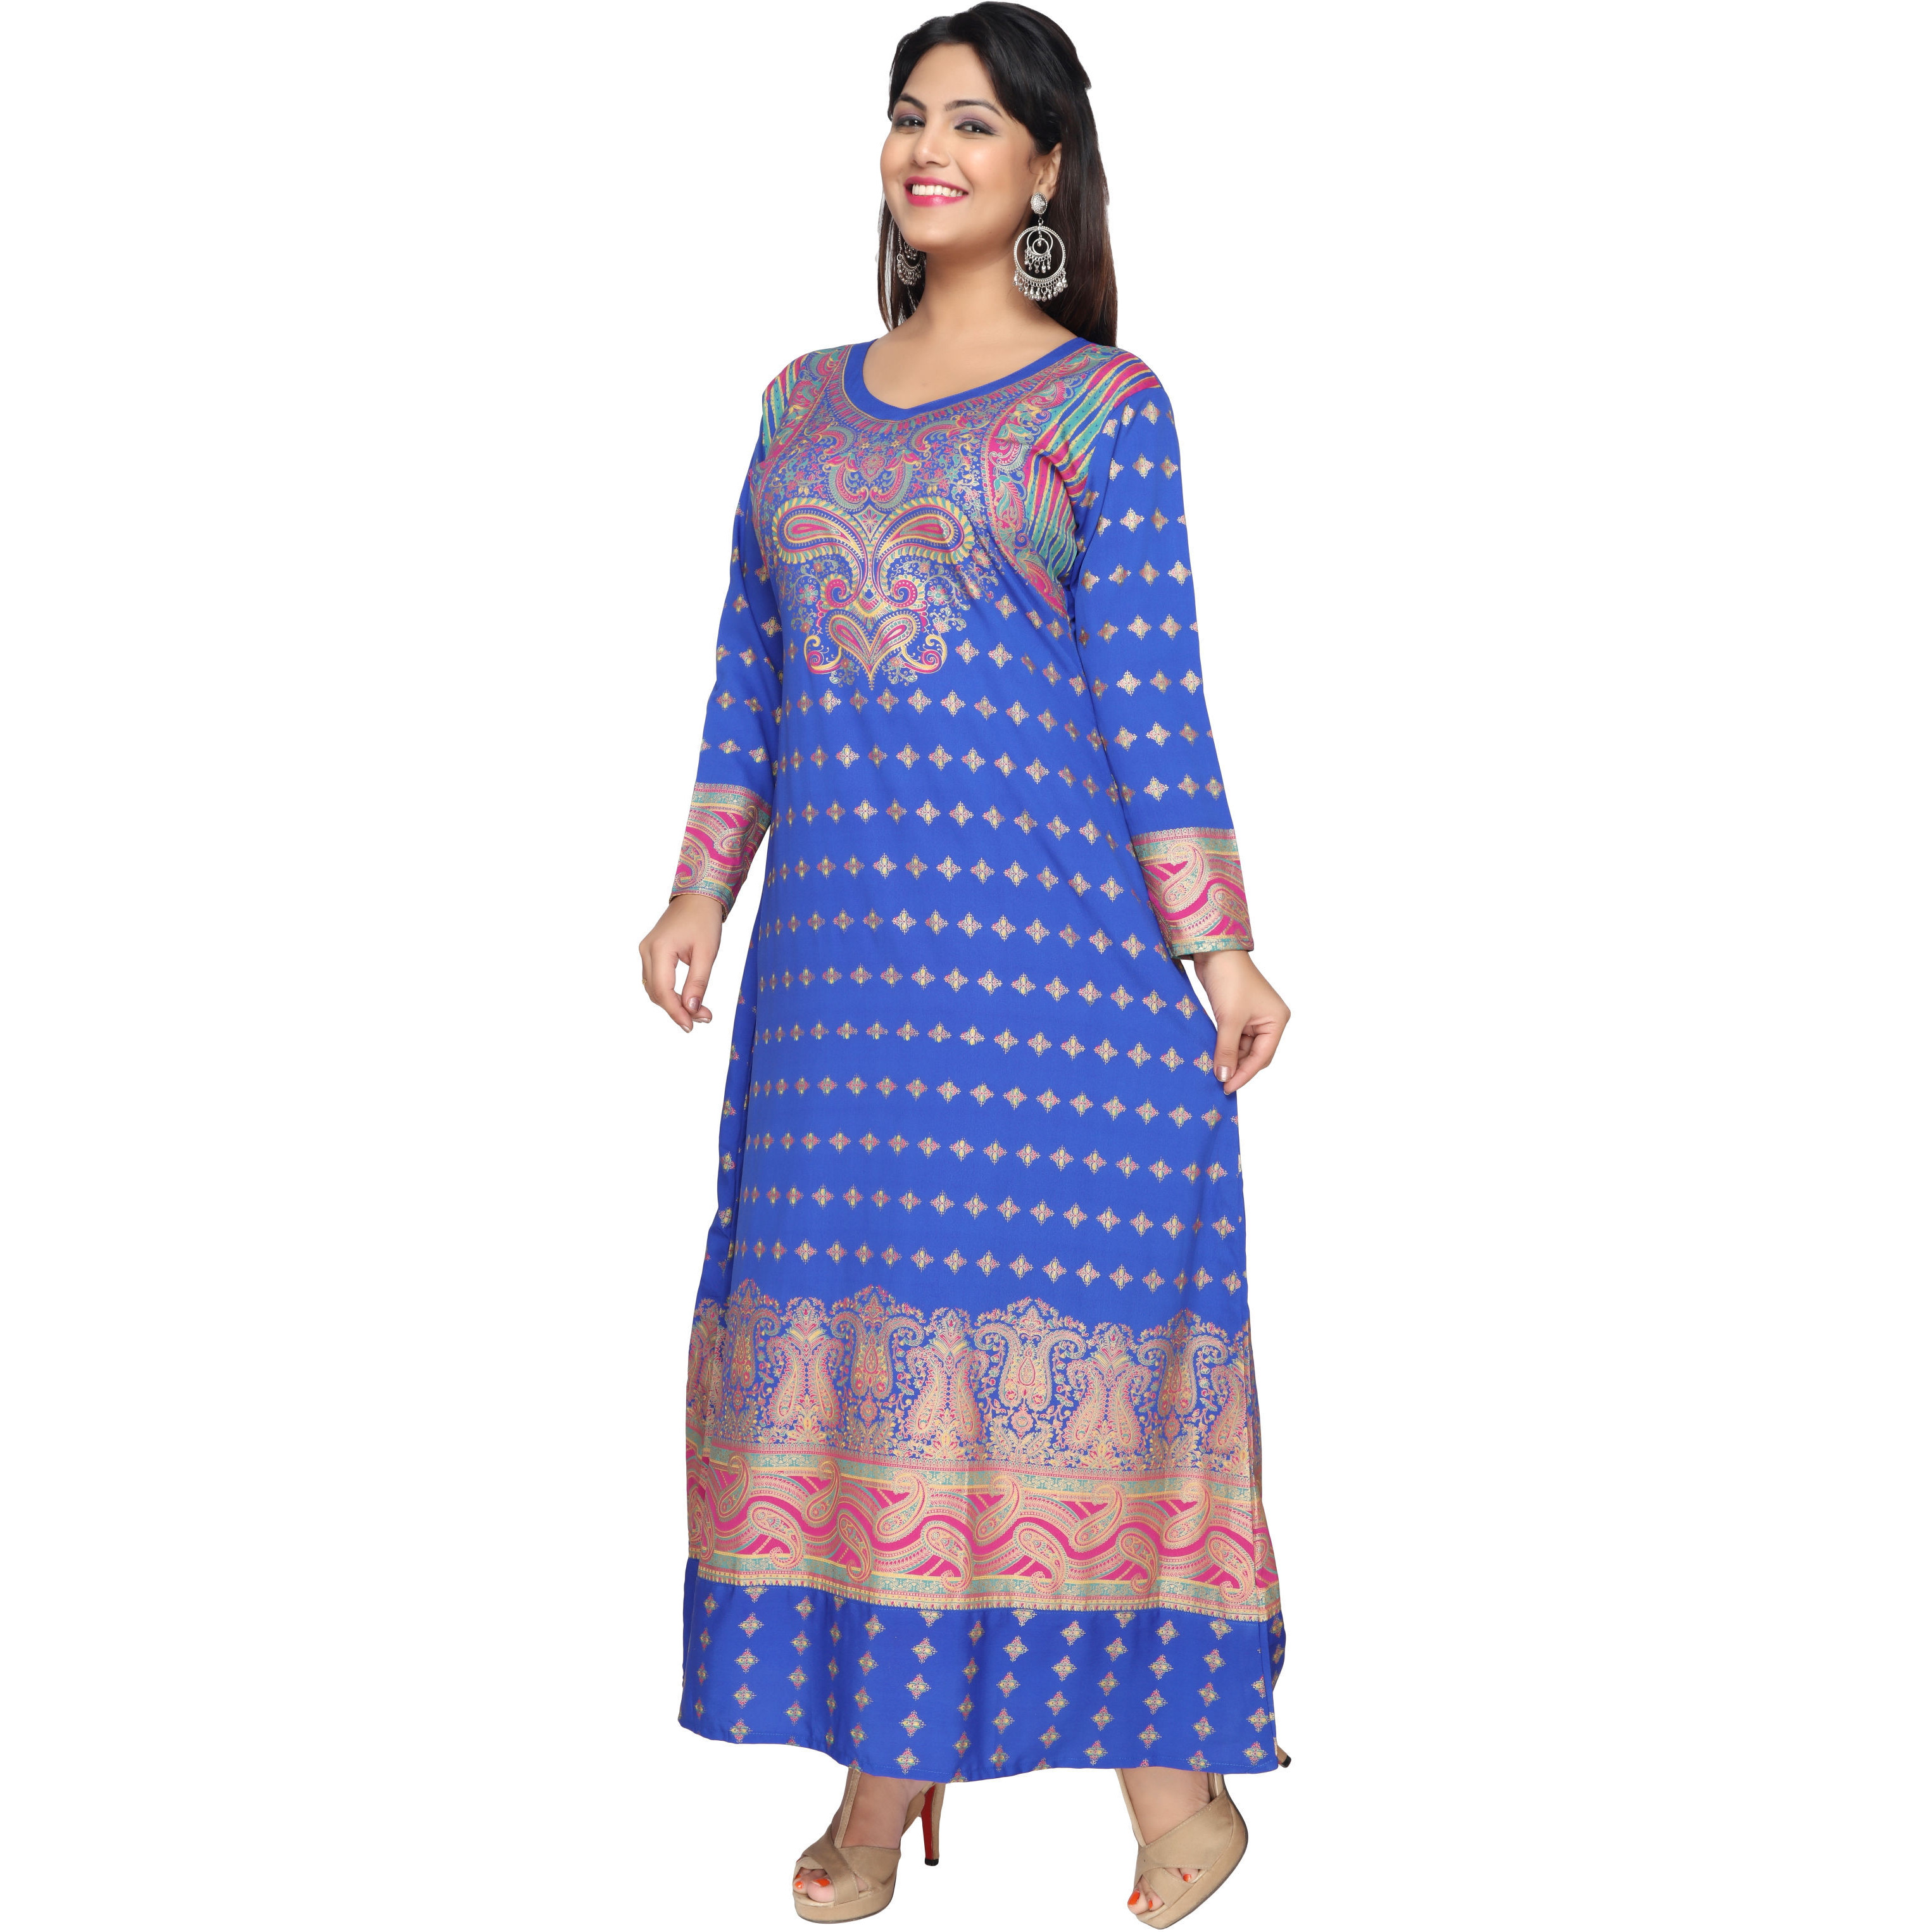 TrendyFashionMall Gold Print Kaftans Maxi Dresses with design in Front and Back (Color:TFMKFT01023-BLUE, Size:50 - 4X-LARGE)